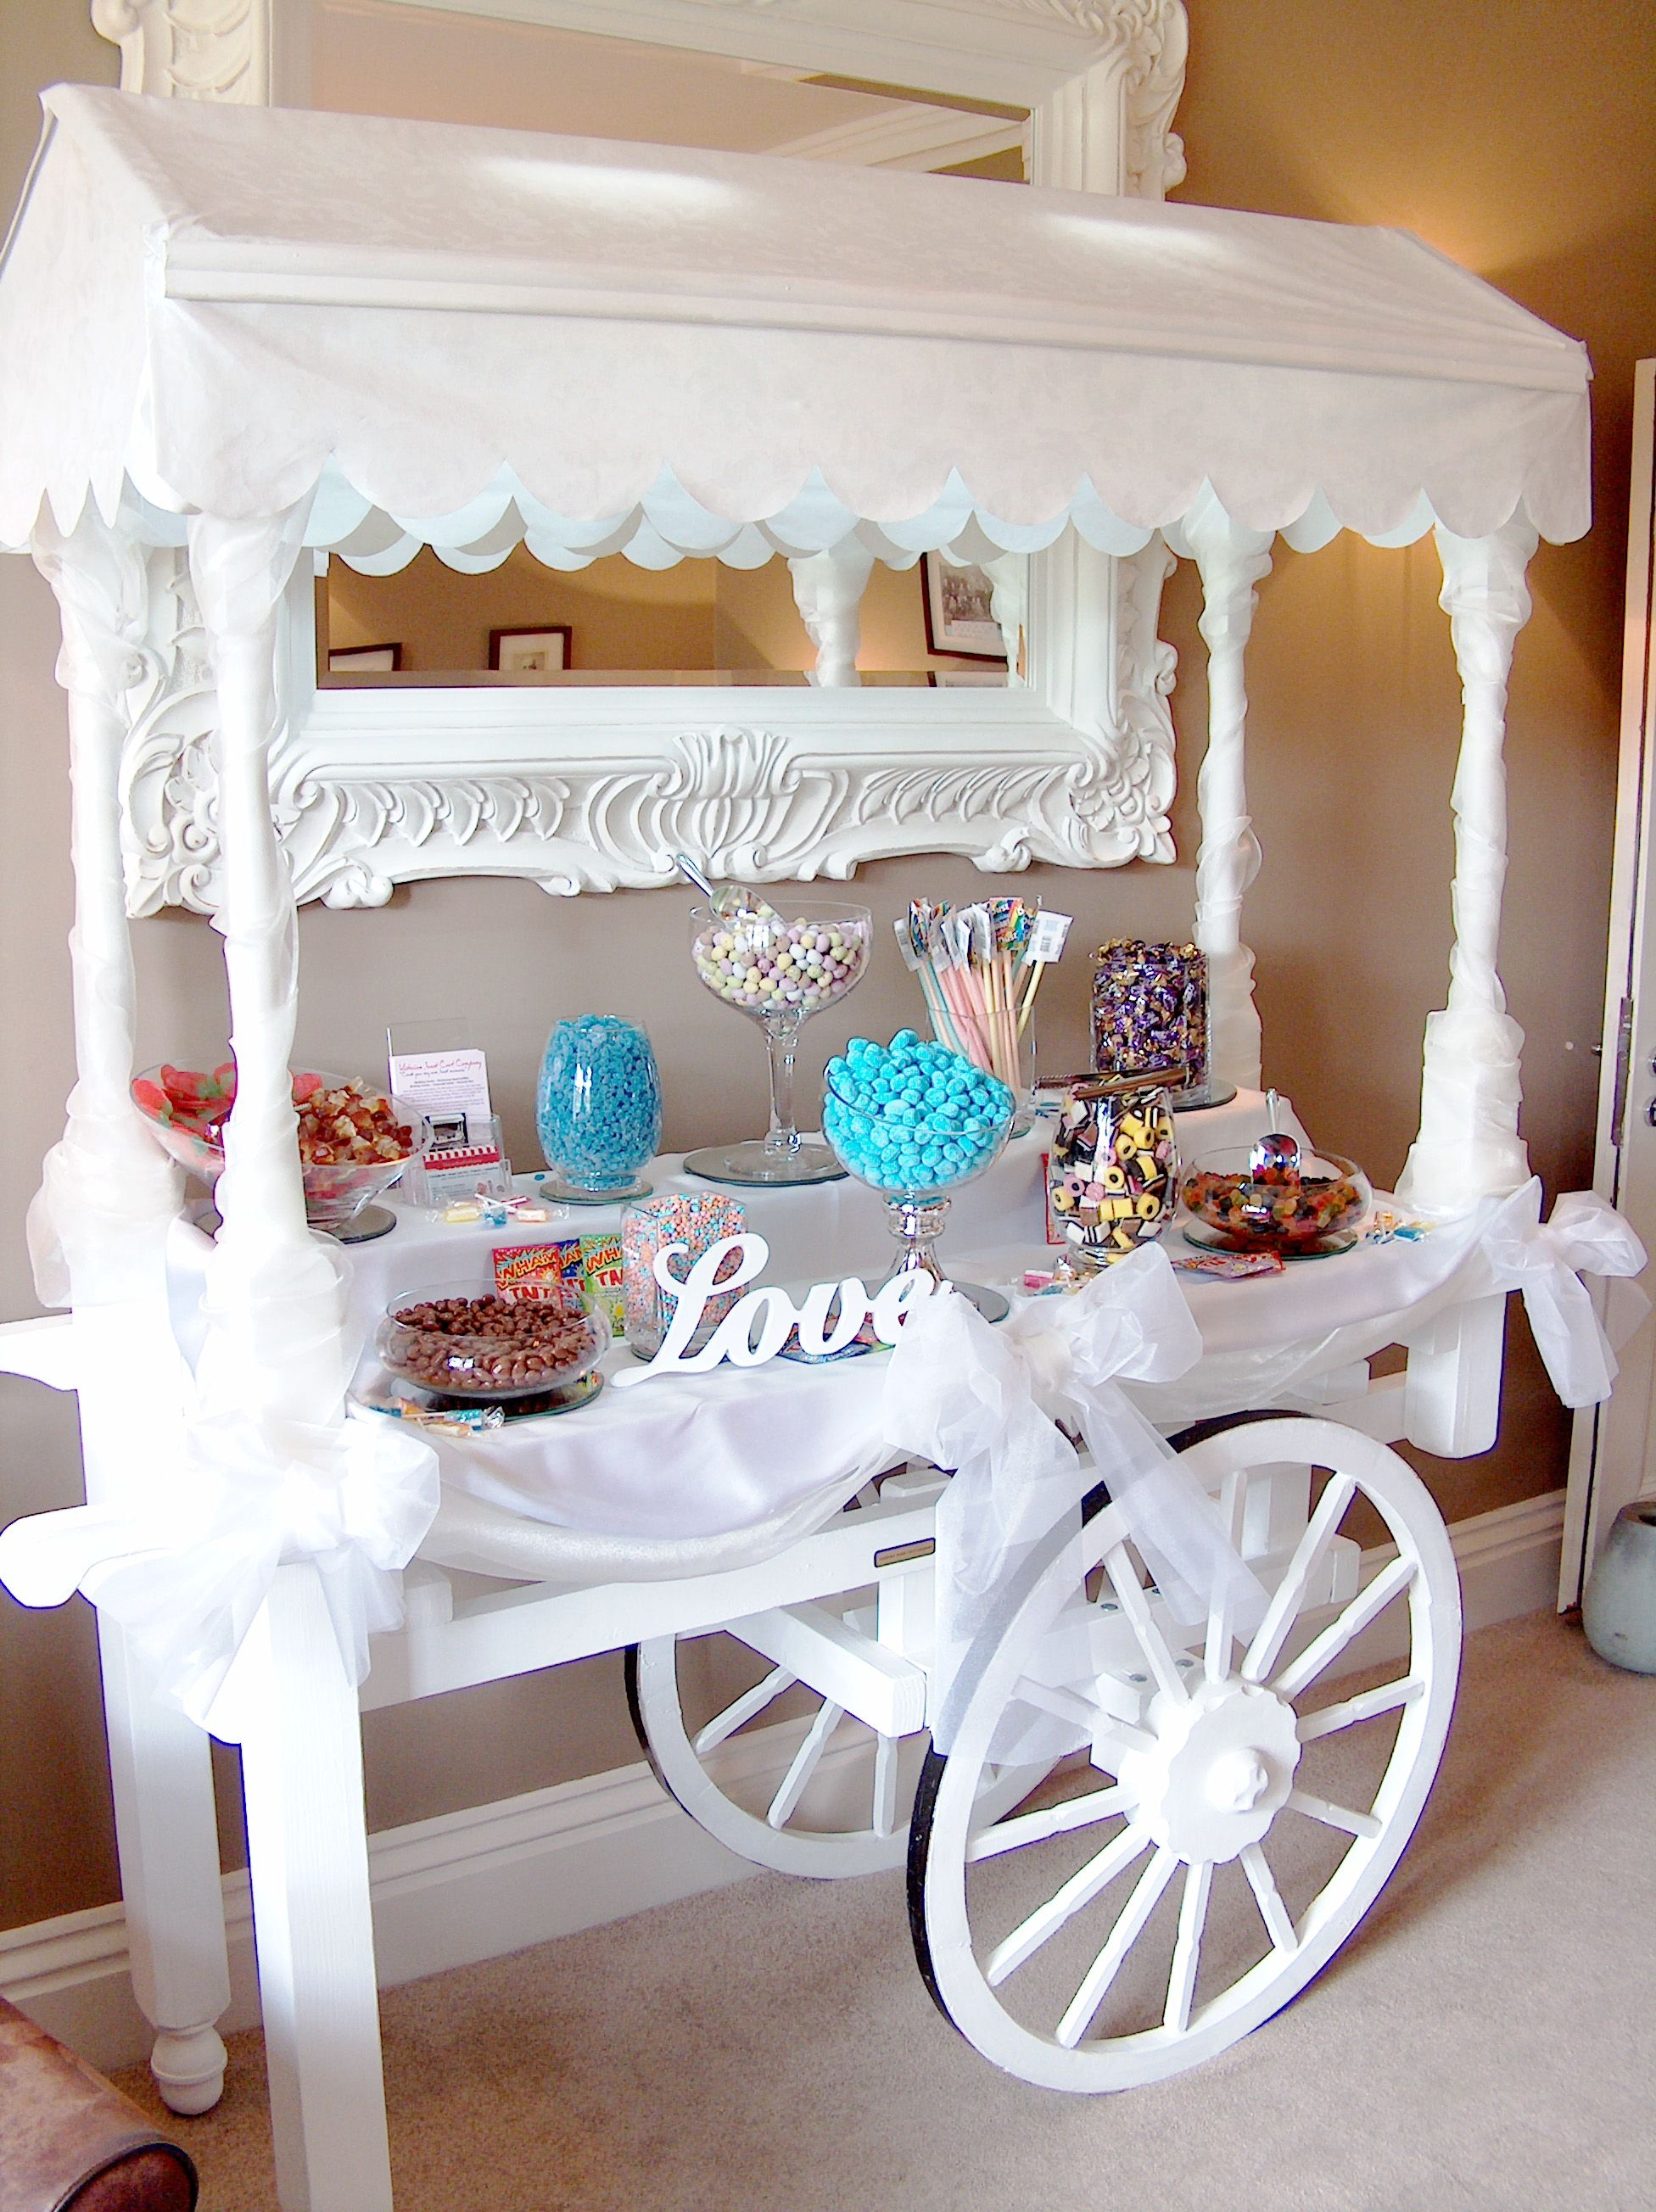 Wedding sweet candy carts cart buffets hire north east northumberland north yorkshire weddings www victoriansweetcartcompany co uk